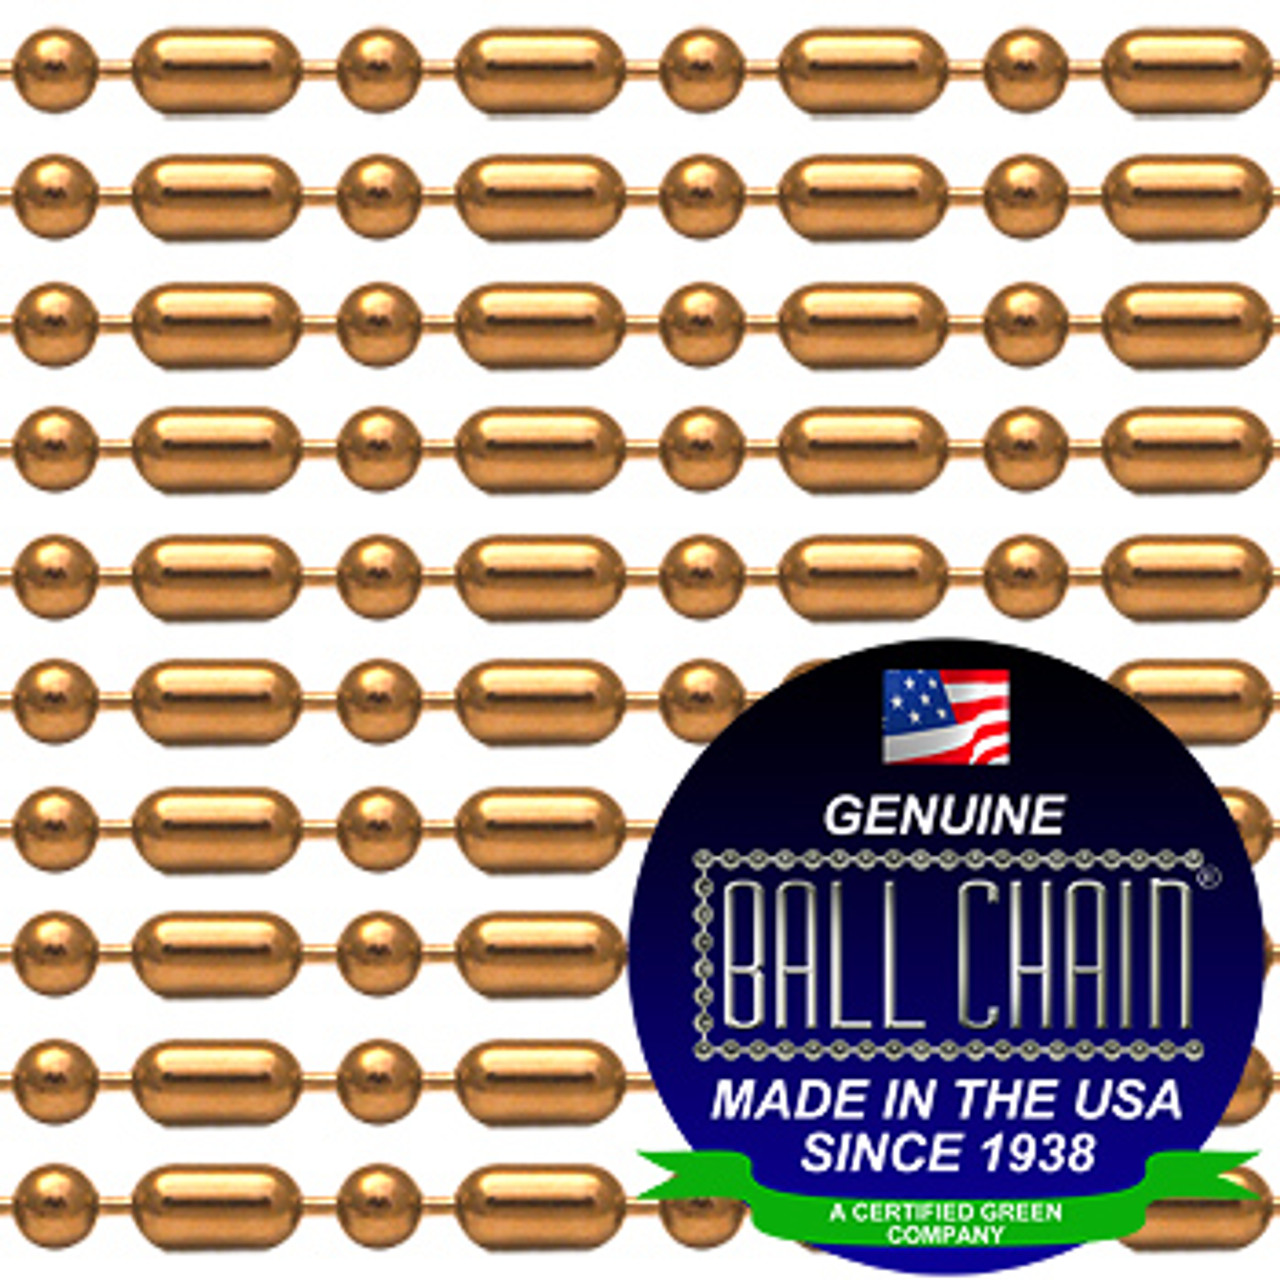 """#6 Copper Ball-Bar Style Ball Chain Spool with Ball Chain Manufacturing seal stating """"Made In The USA Since 1938"""" and """"Certified Green Business""""."""